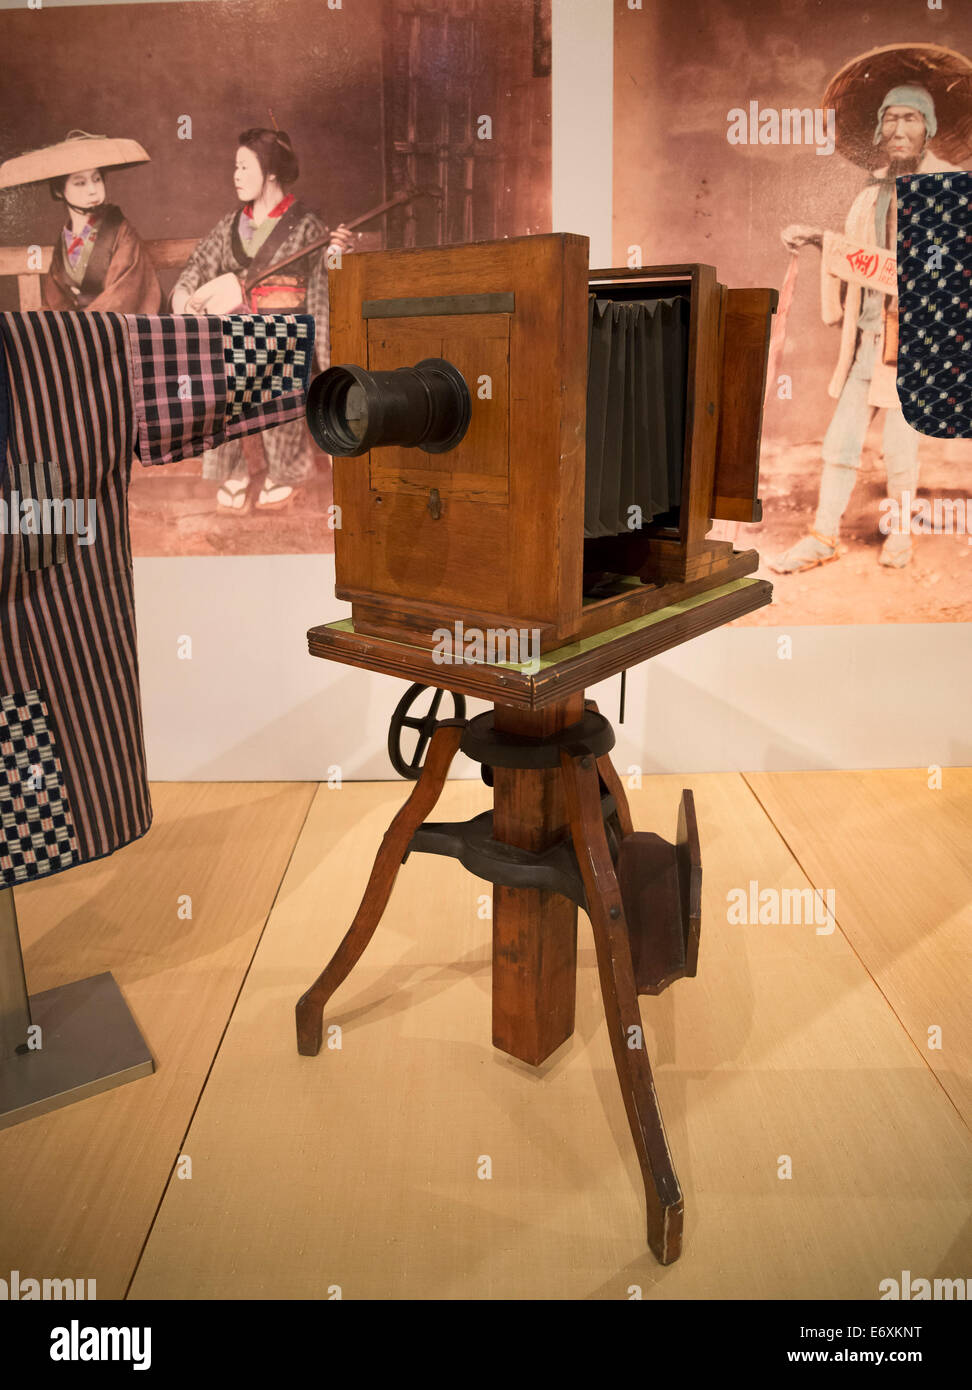 This is an Ansco large format camera ca 1890 on display at the Museum of Natural History on the Univ. of  FL campus - Stock Image